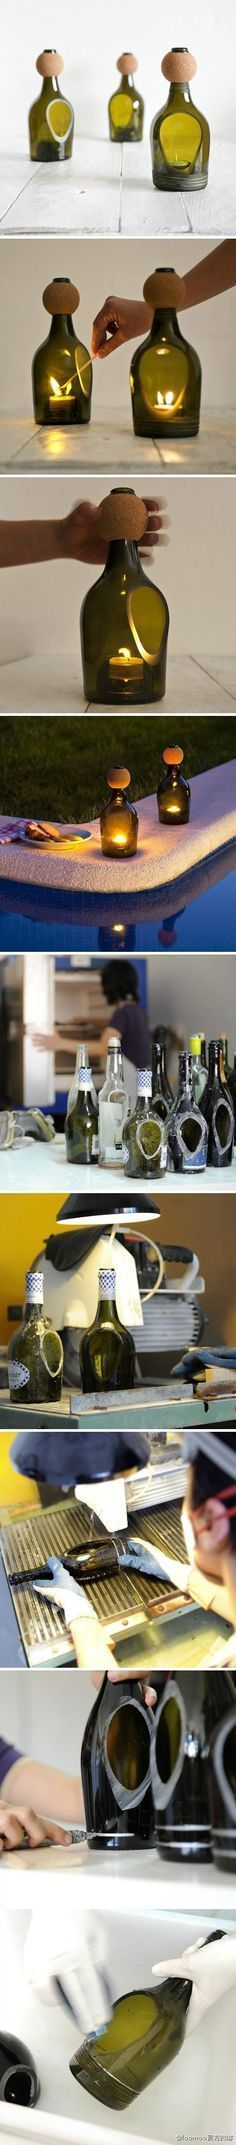 44 Simple DIY Wine Bottles Crafts And Ideas On How To Cut Glass